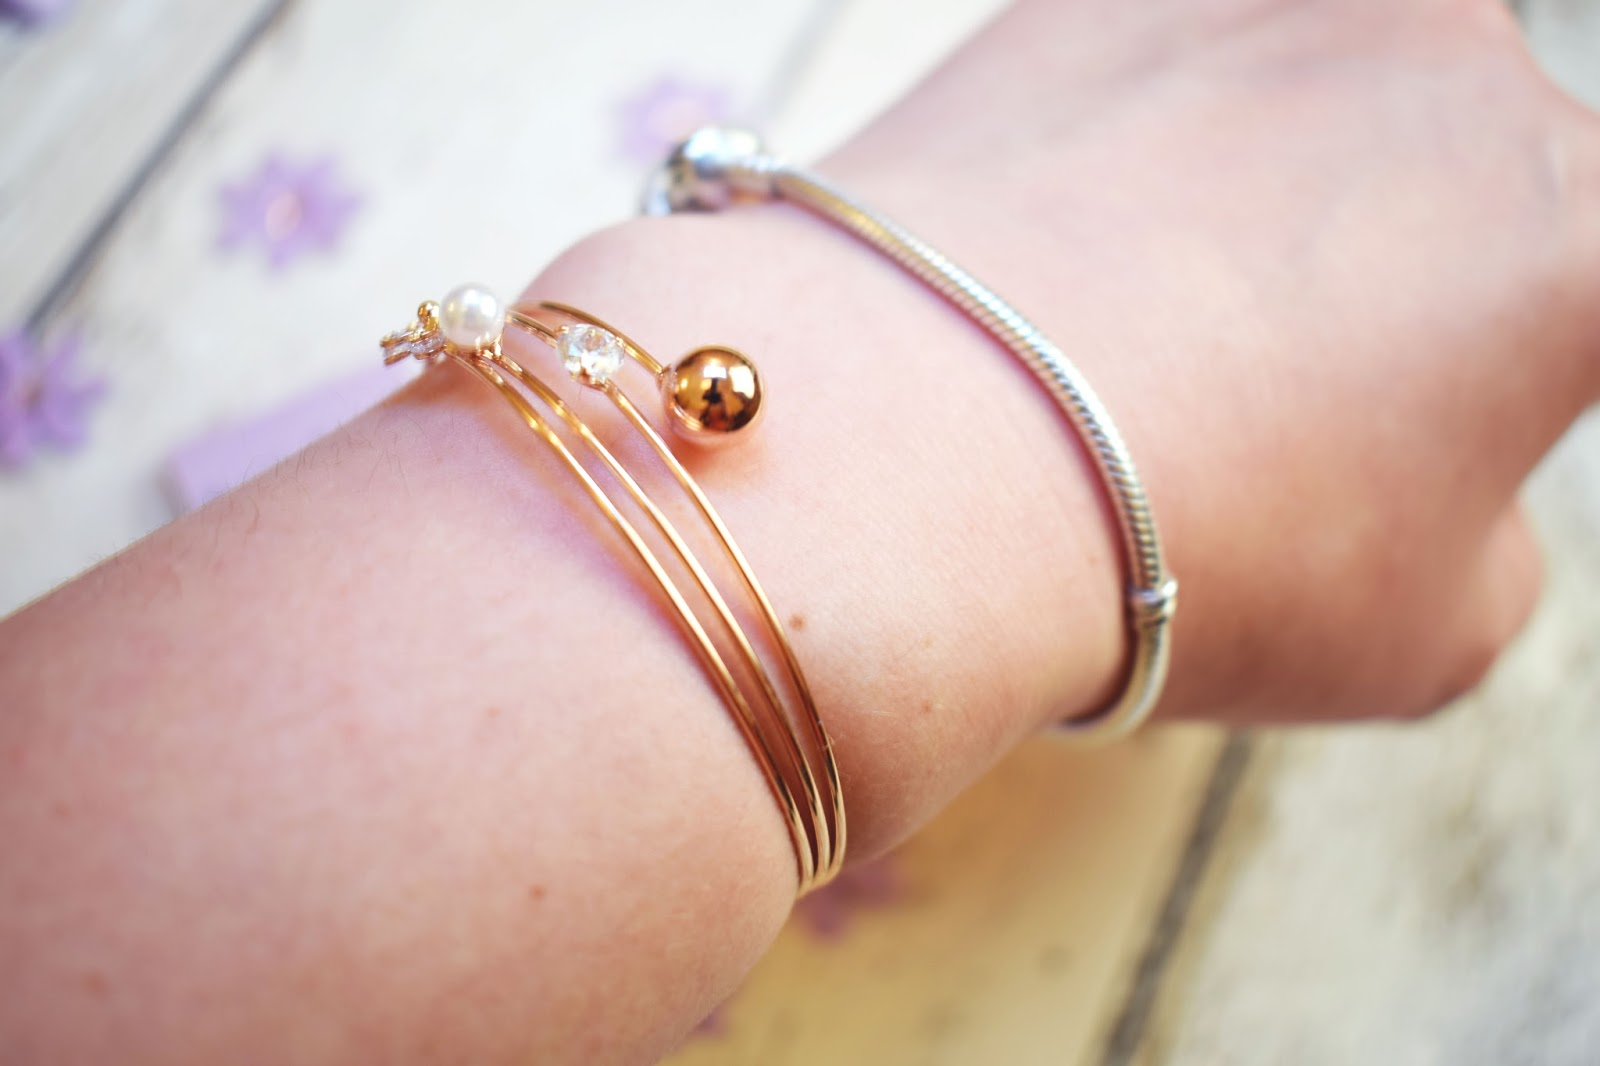 lebellelavie - A review of Bug Bee Boom Jewellery